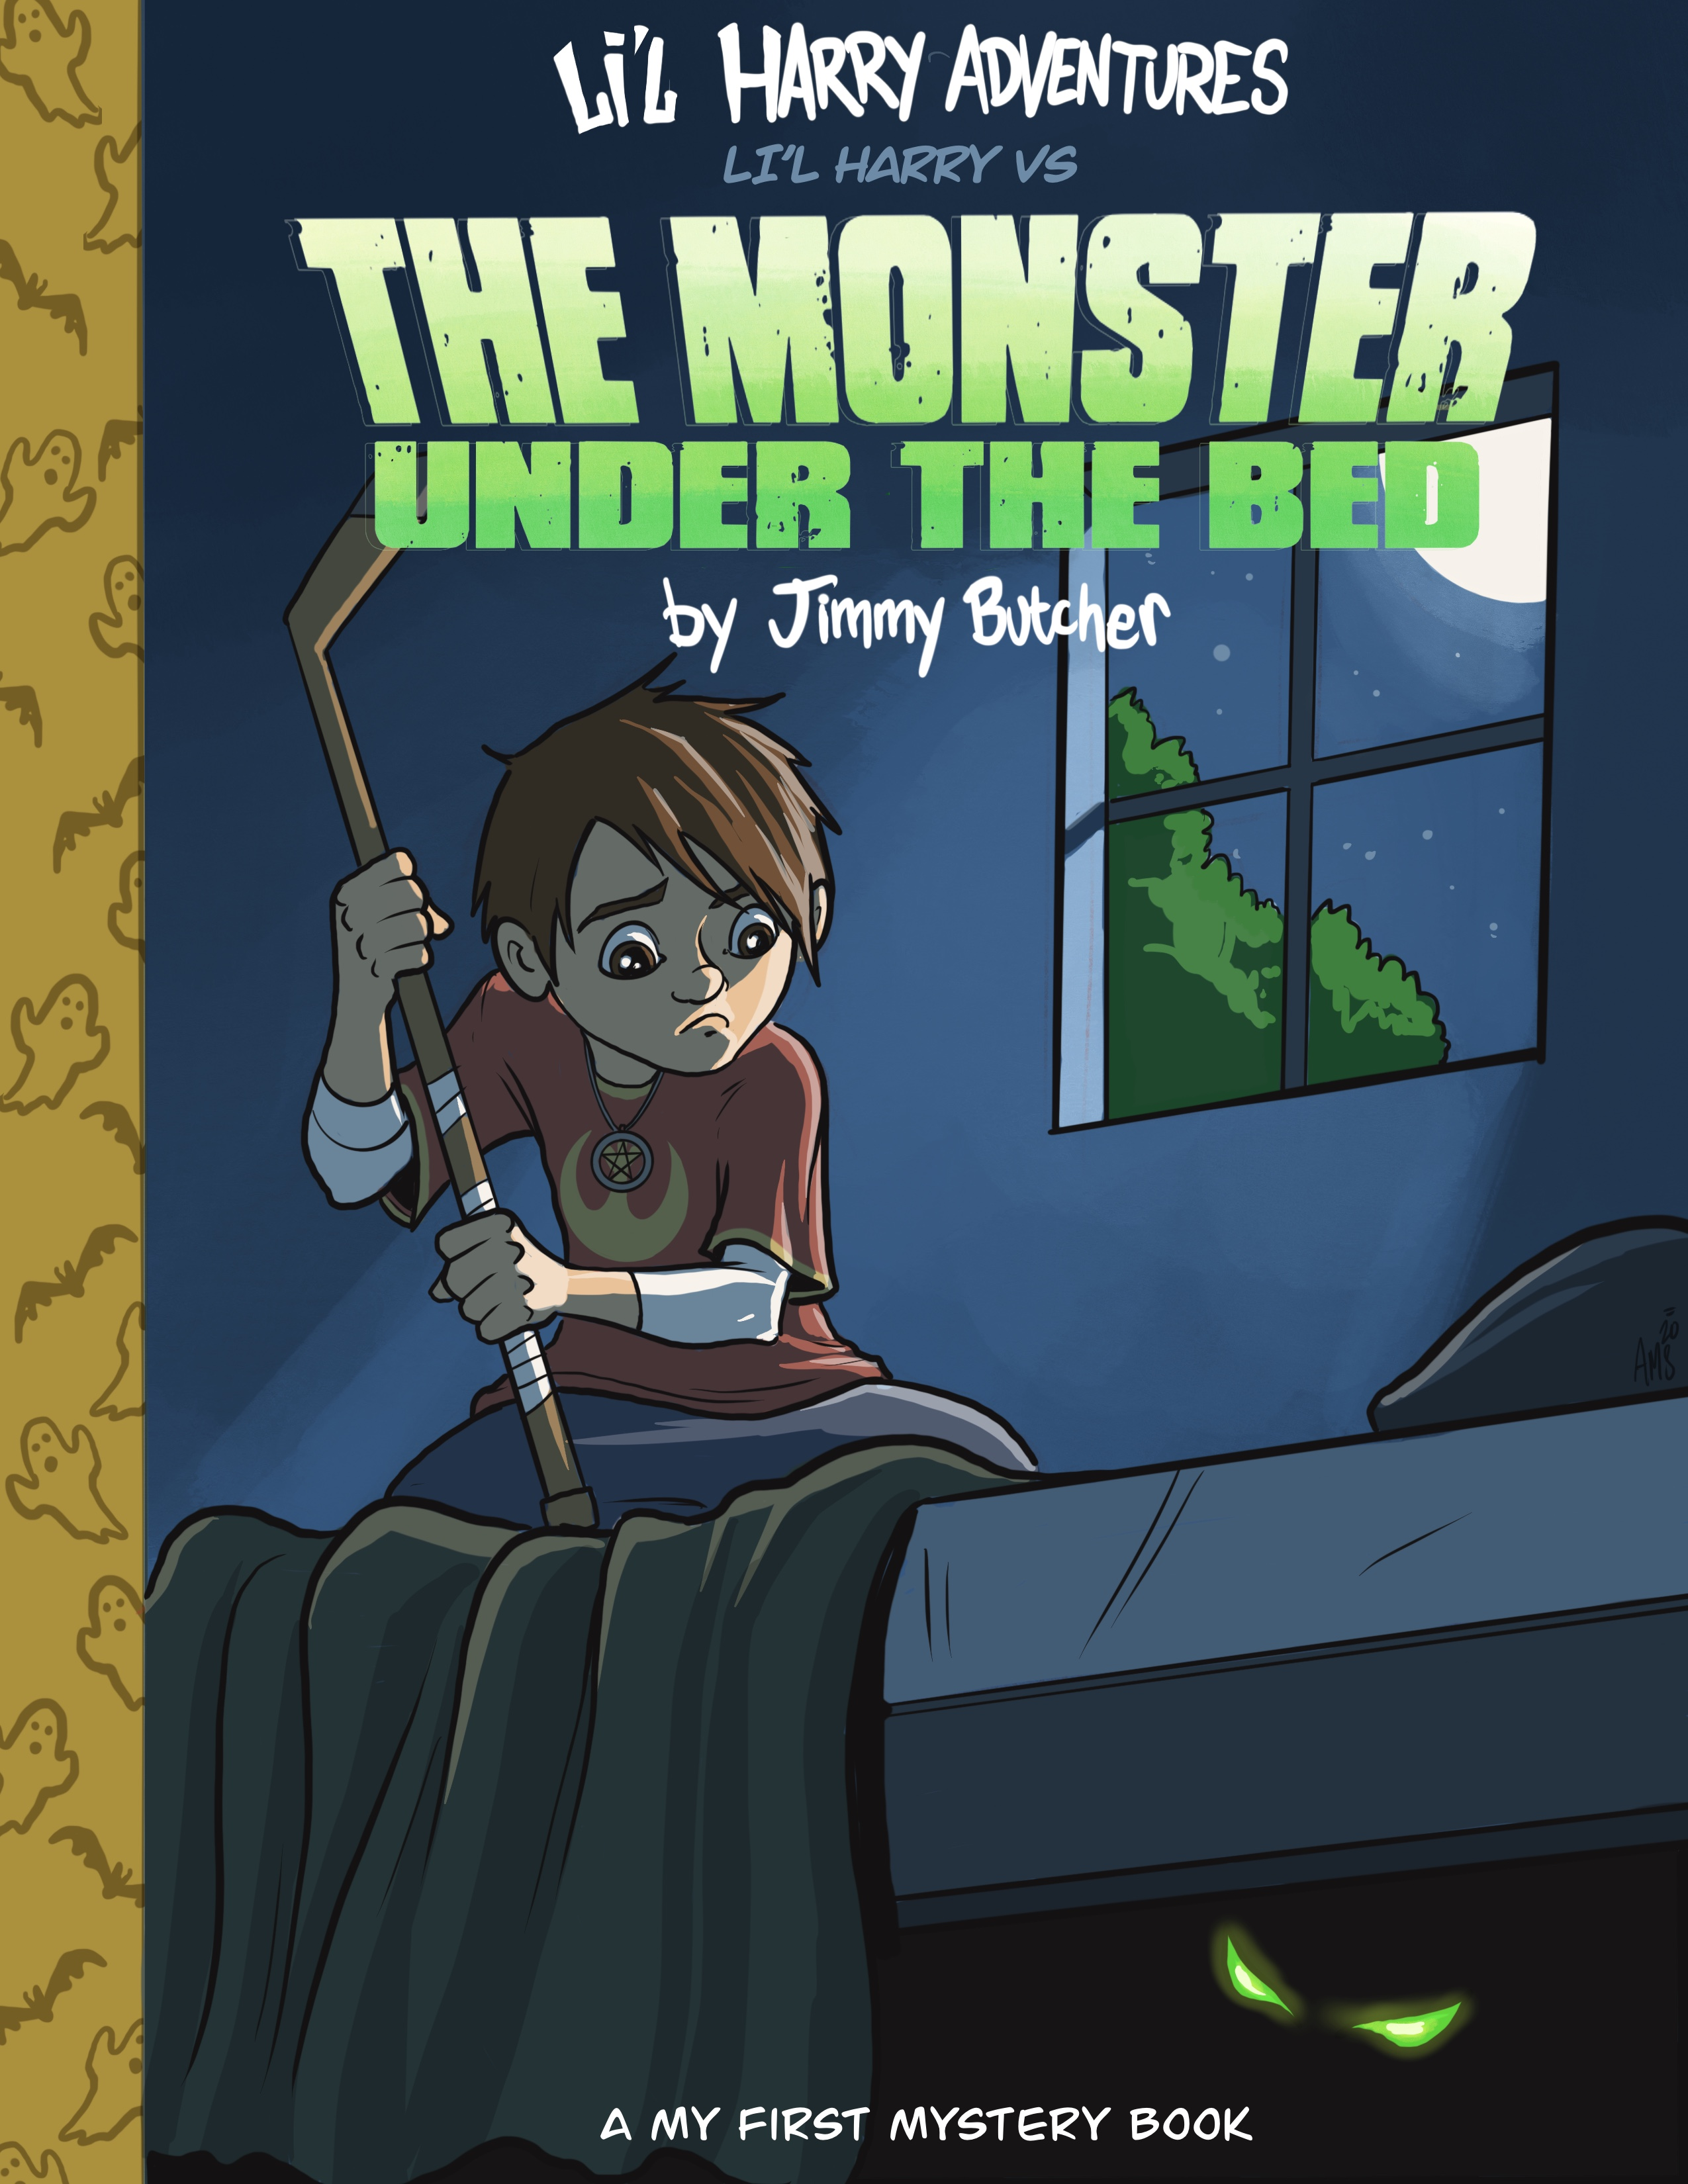 Li'l Harry Adventures: Li'l Harry vs the Monster Under the Bed